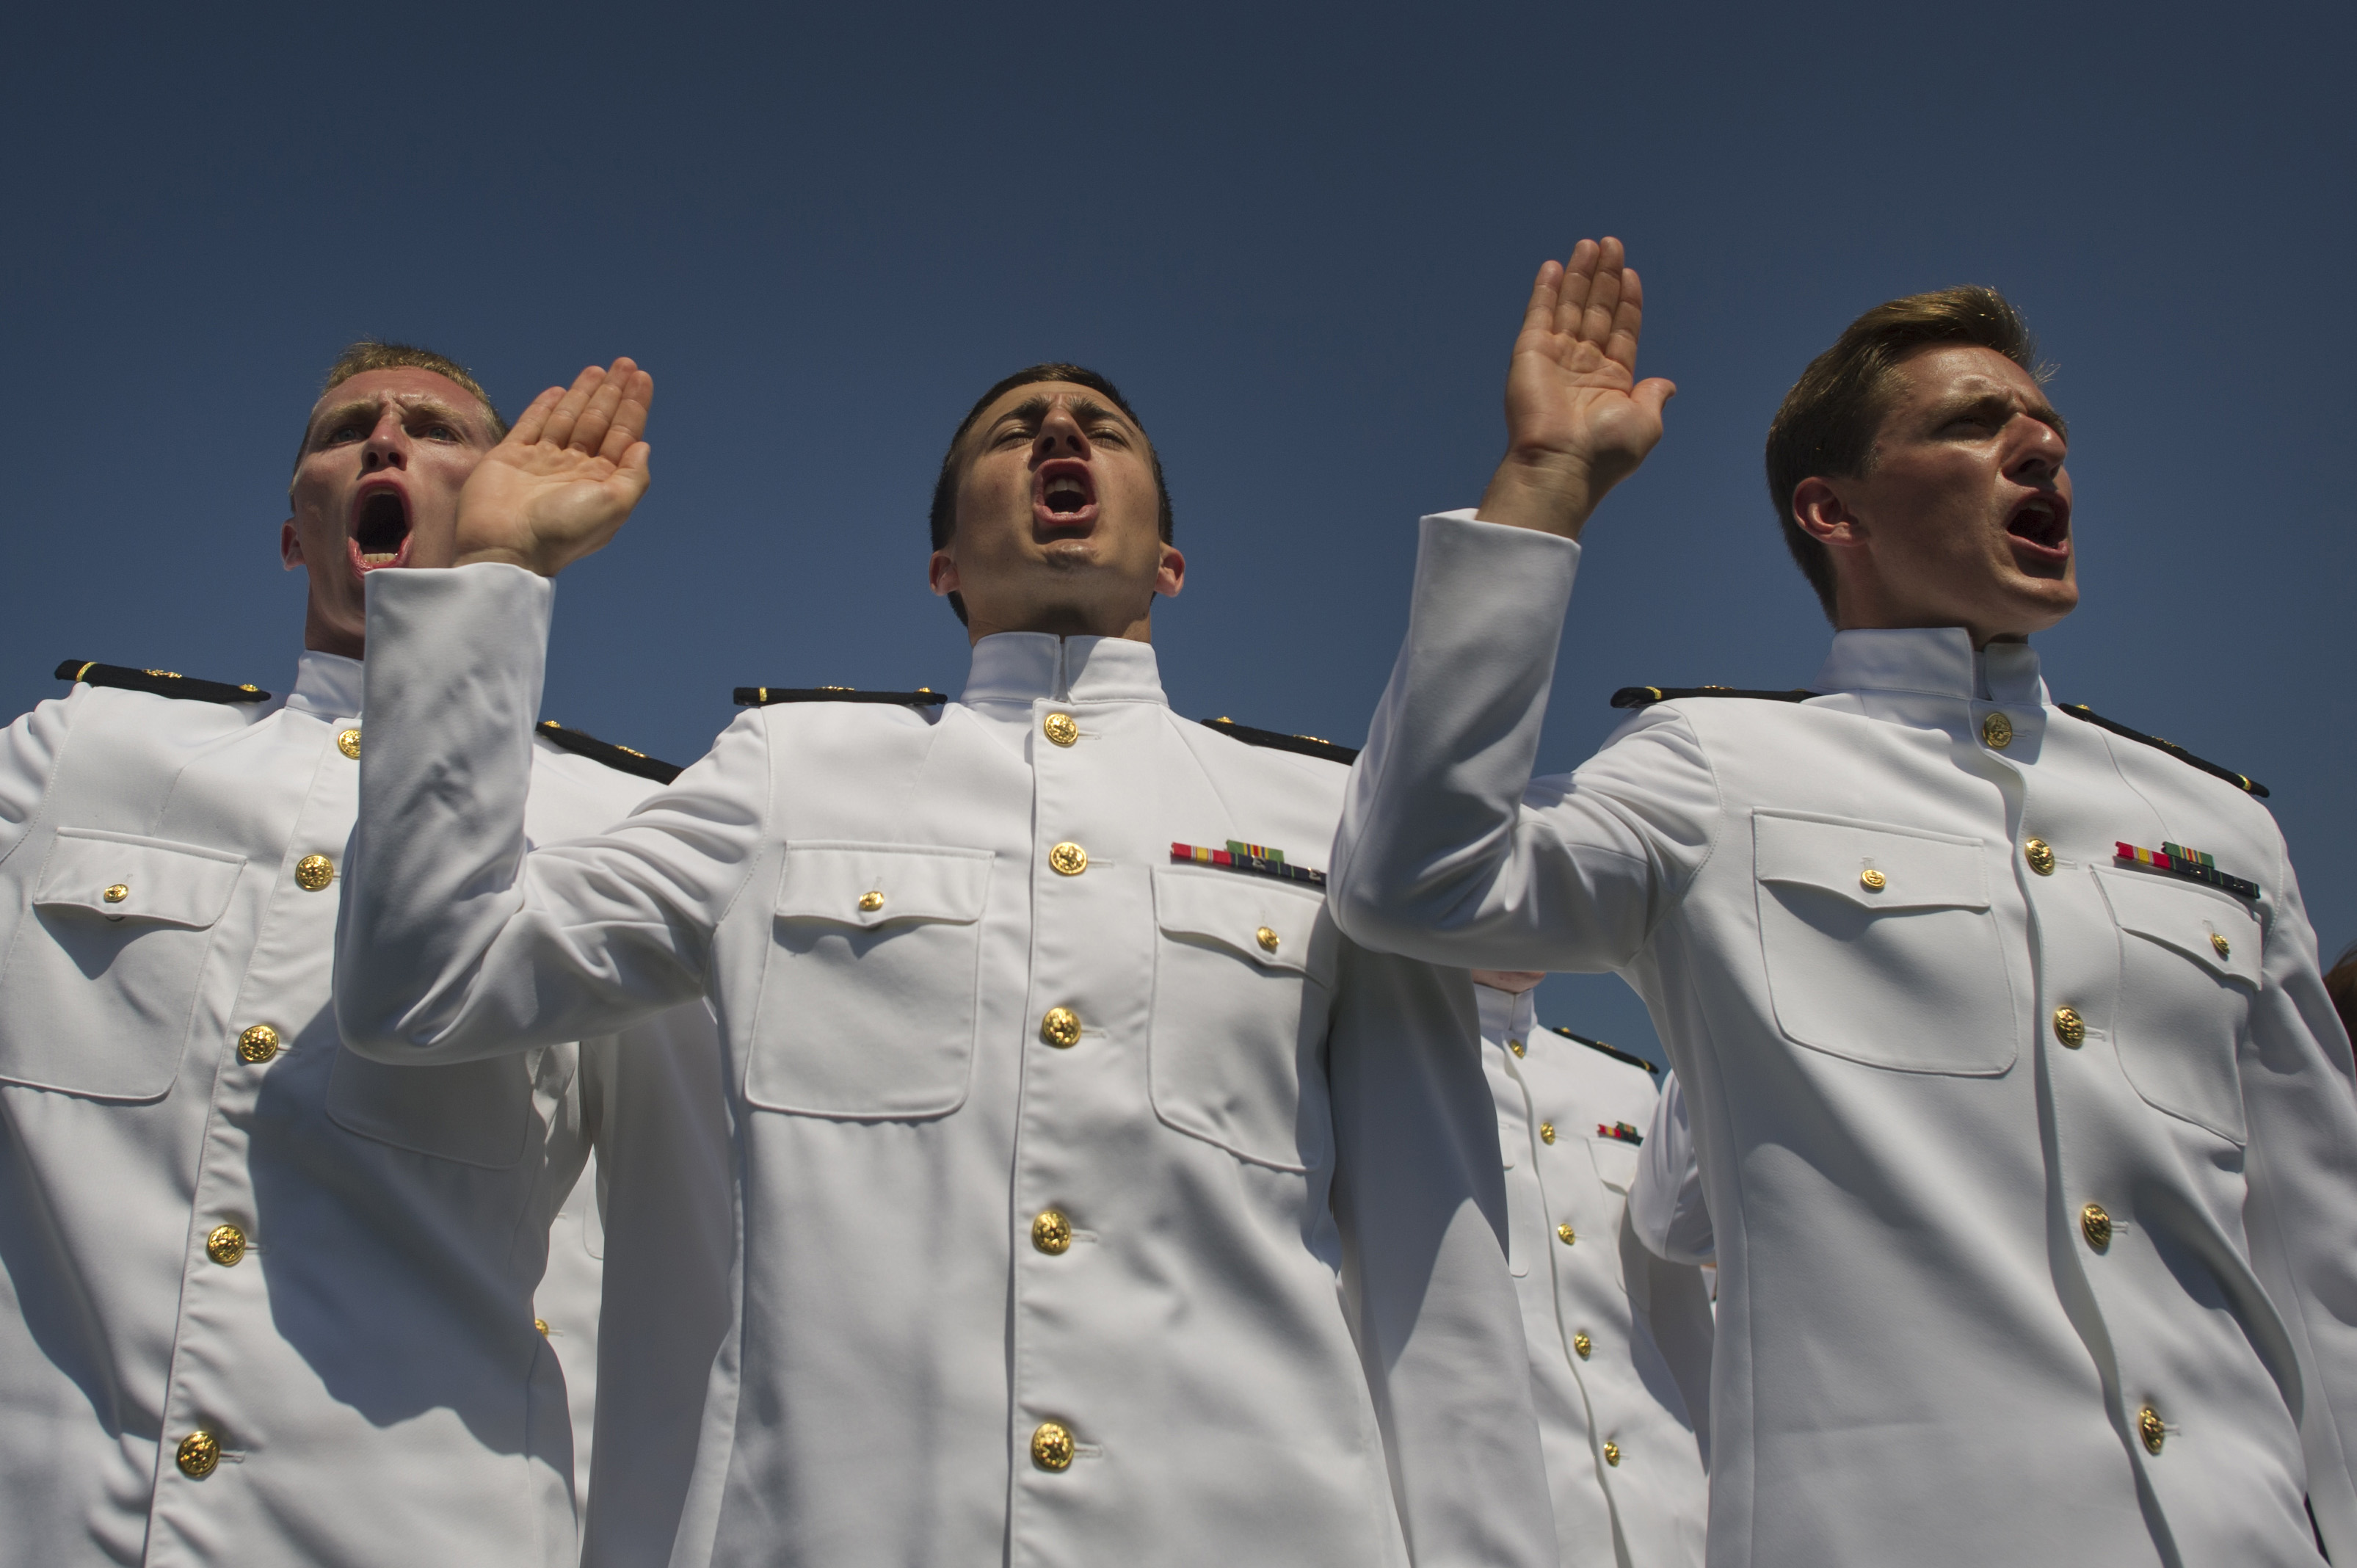 us naval academy essays Advice from the pros on getting into a military academy  the naval academy and the us military academy  in interviews and essays, students should emphasize examples of leadership and .